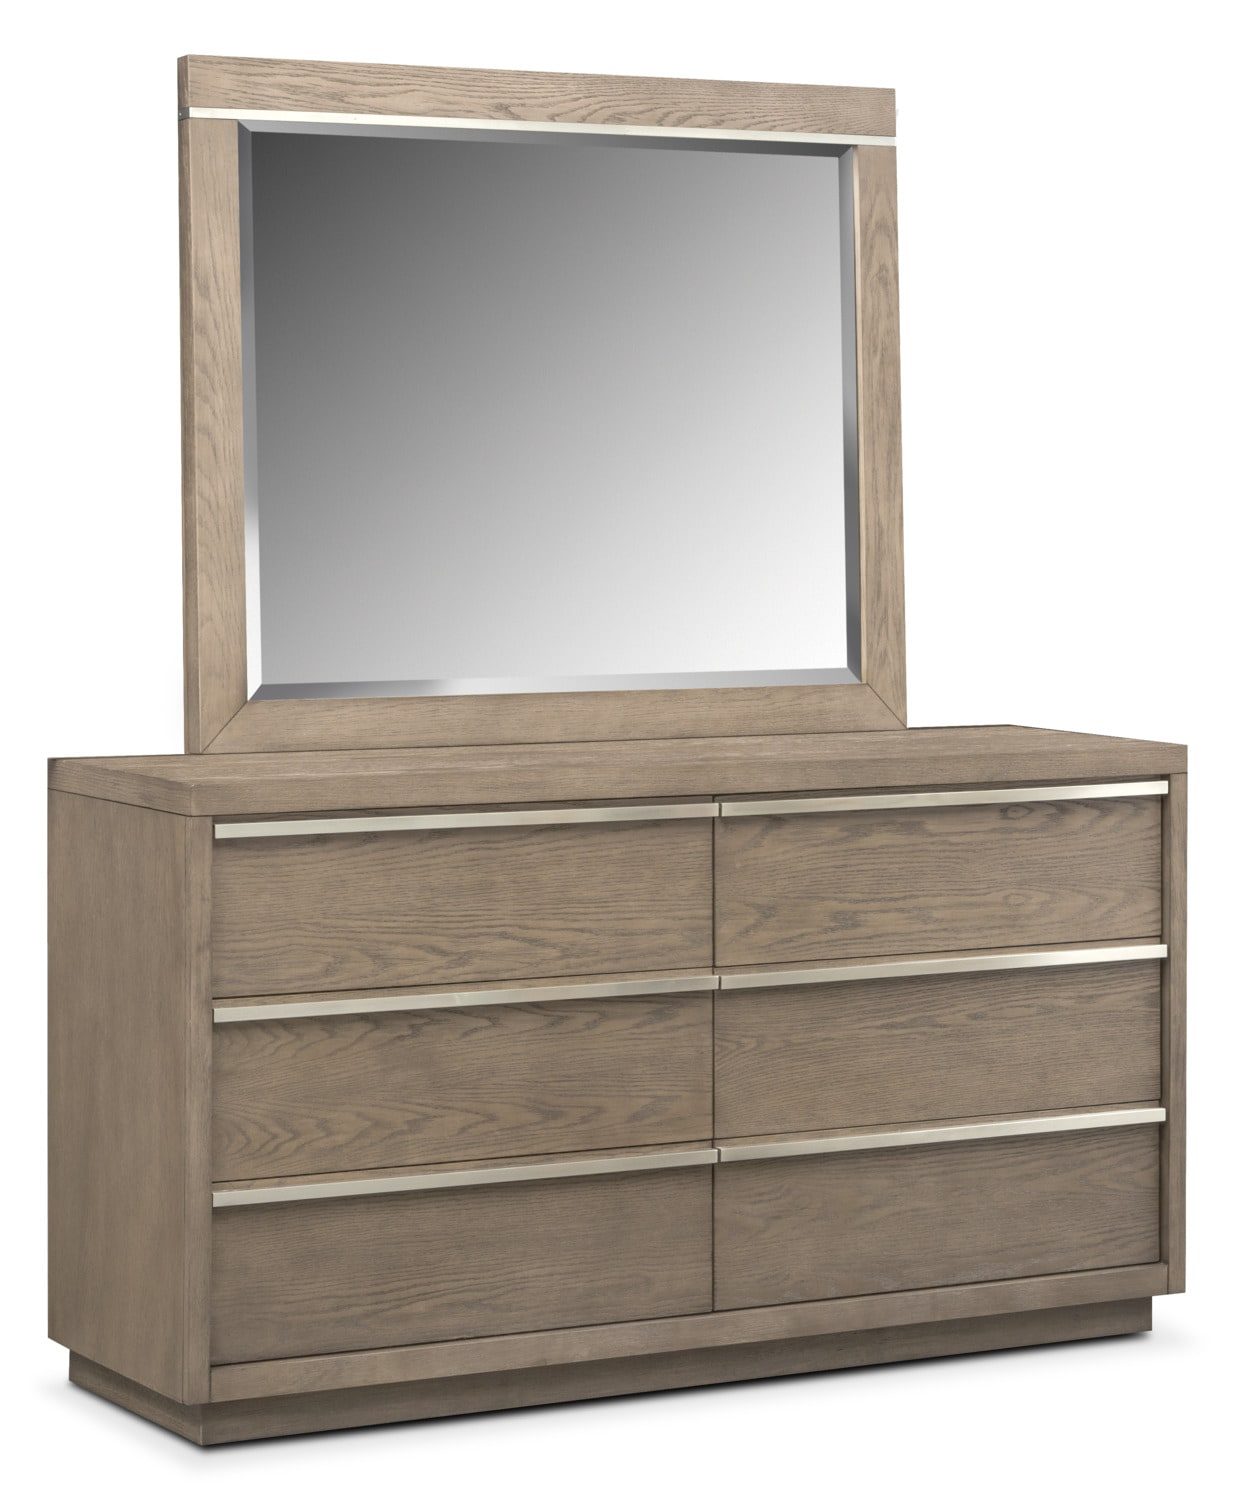 Gavin Dresser and Mirror - Graystone